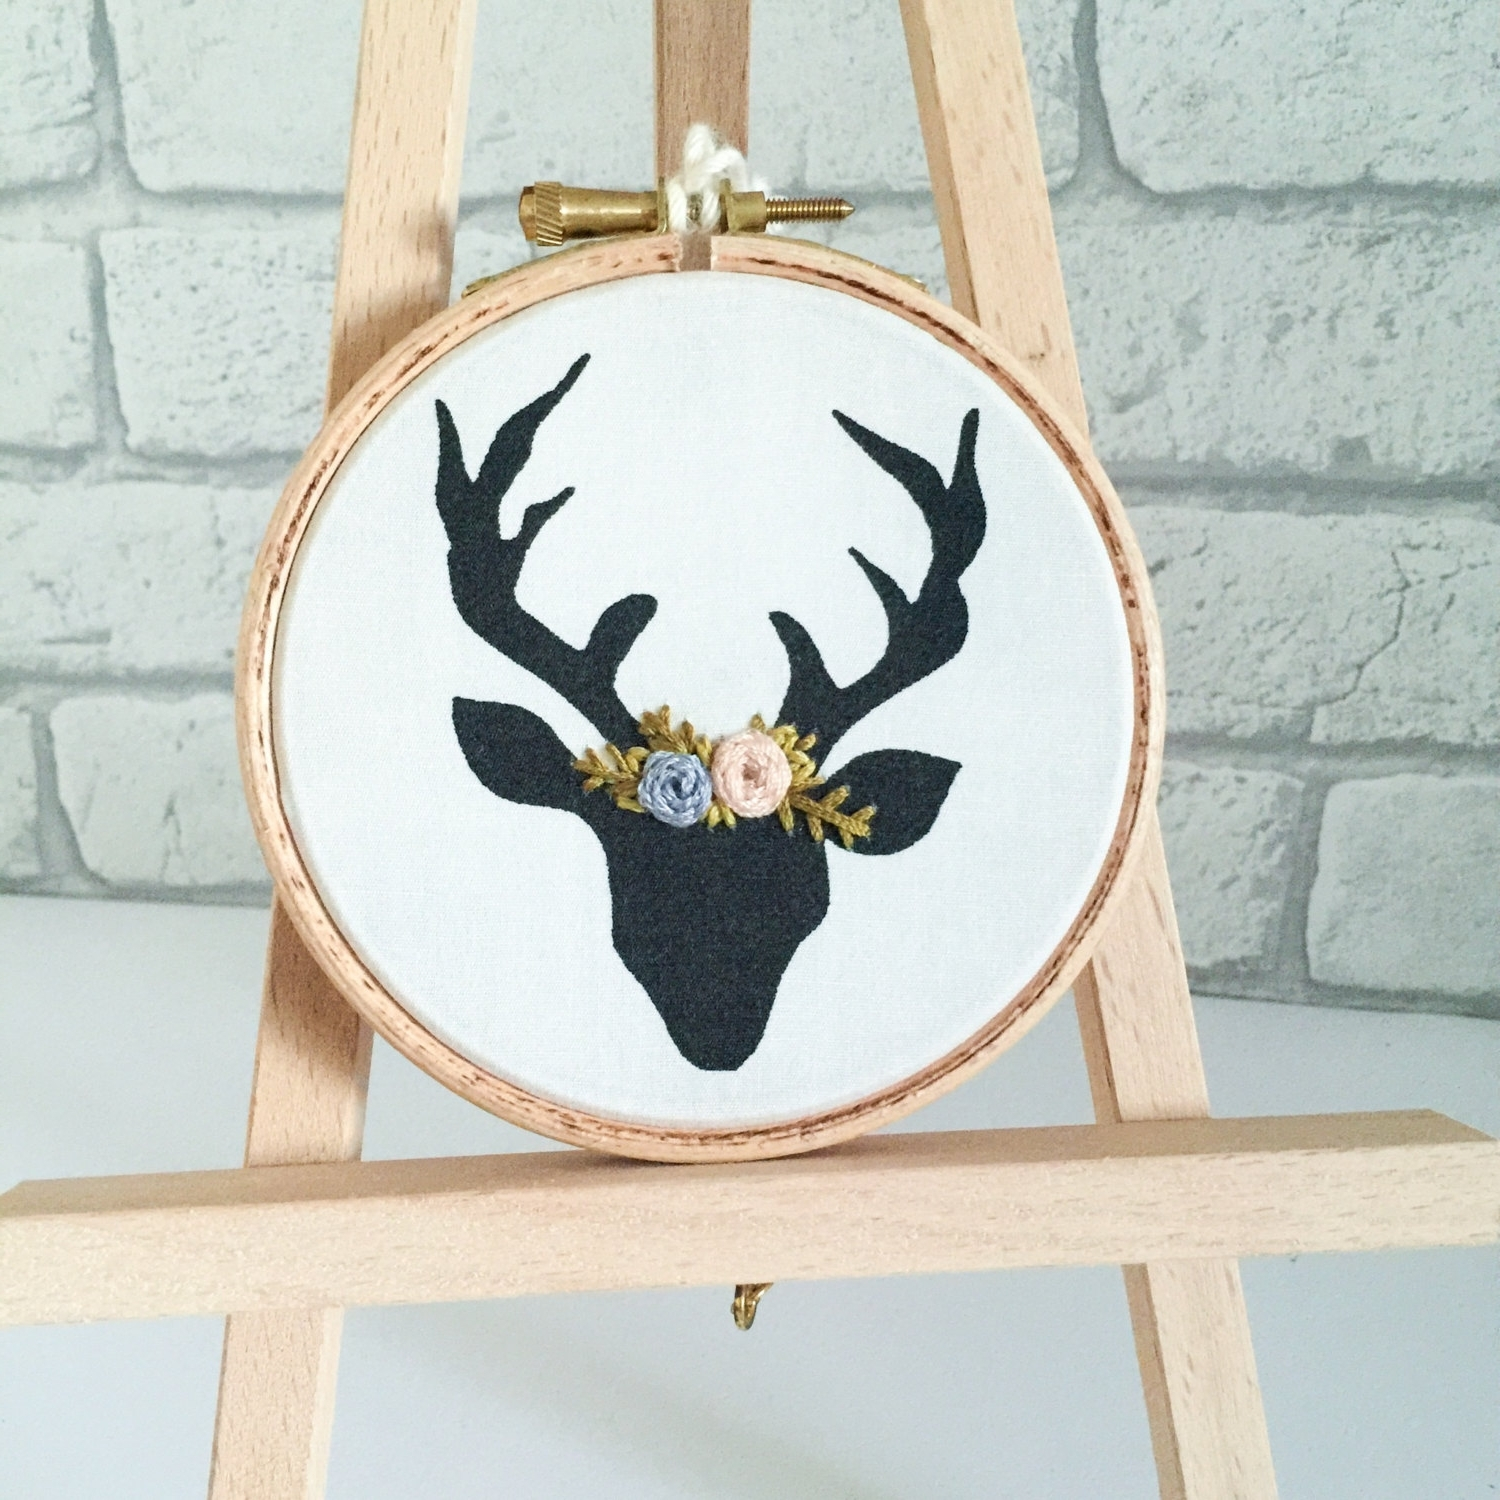 Stag Head, Hand Embroidery, Deer Head, Wall Hanging, Embroidery With 2017 Embroidery Hoop Fabric Wall Art (View 12 of 15)